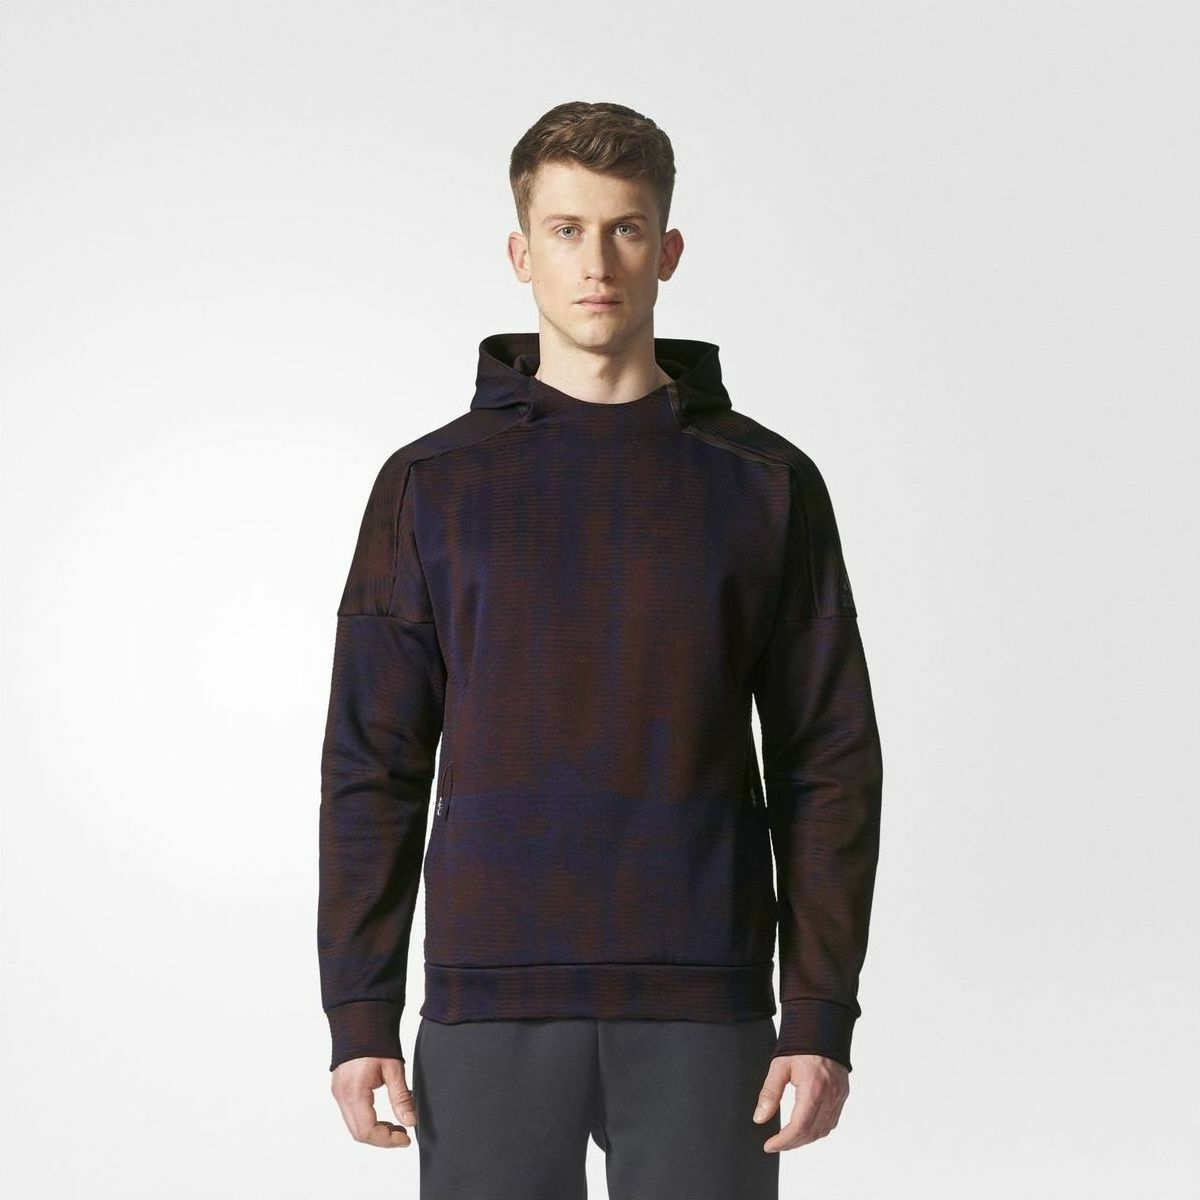 Adidas  Z.N.E Pulse Jacquard Winter Hoodie BQ7054 Running Walking Jogging Gym (M)  new exclusive high-end